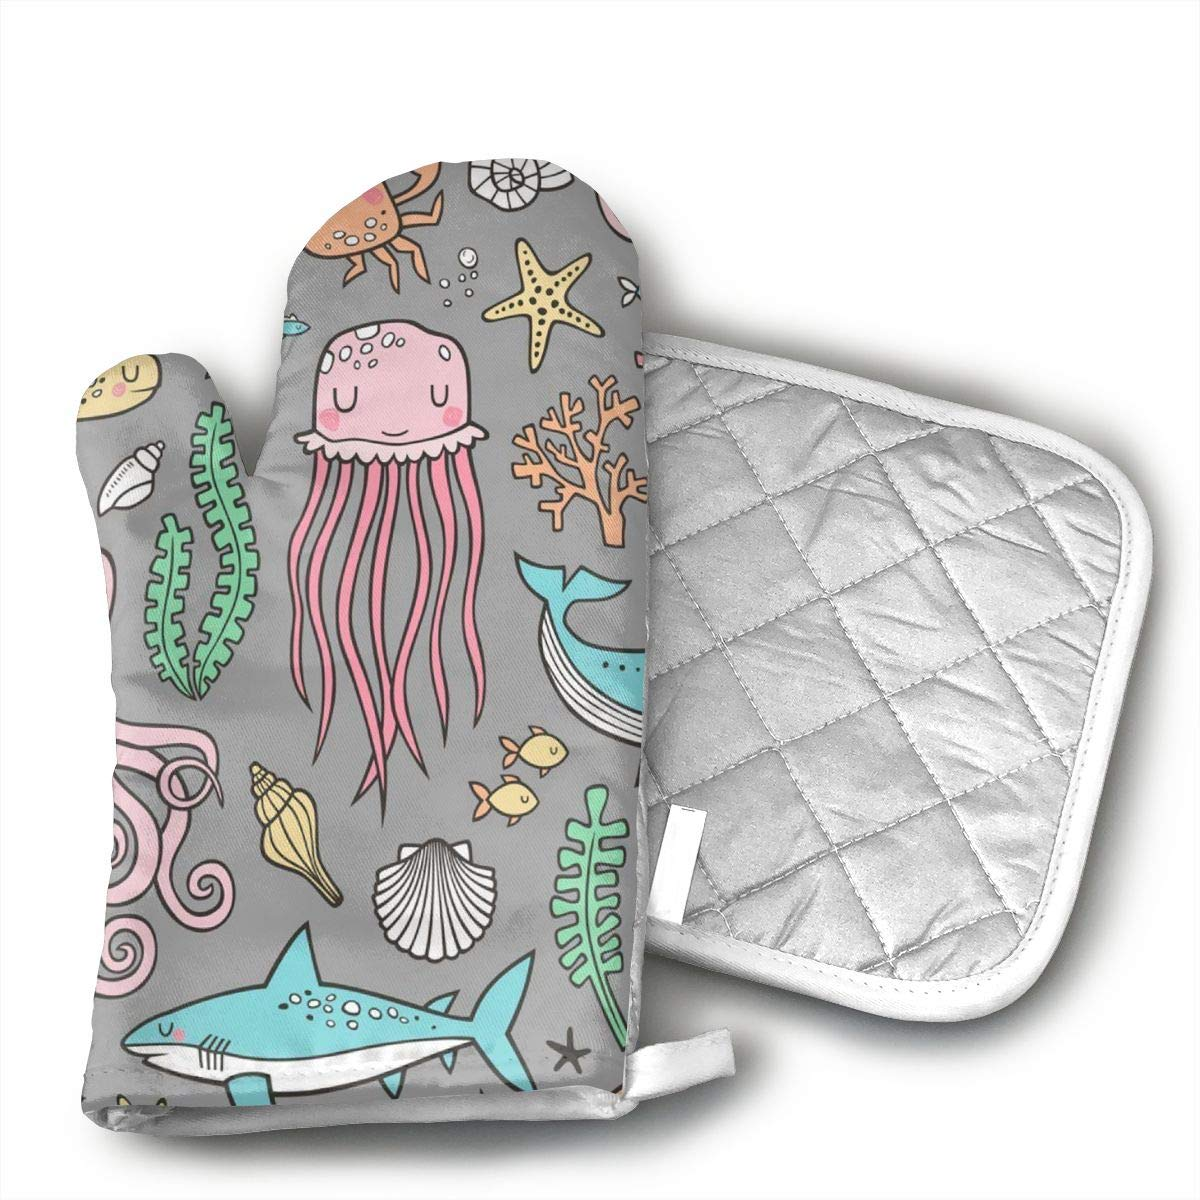 Wiqo9 Ocean Sea Life Oven Mitts and Pot Holders Kitchen Mitten Cooking Gloves,Cooking, Baking, BBQ.